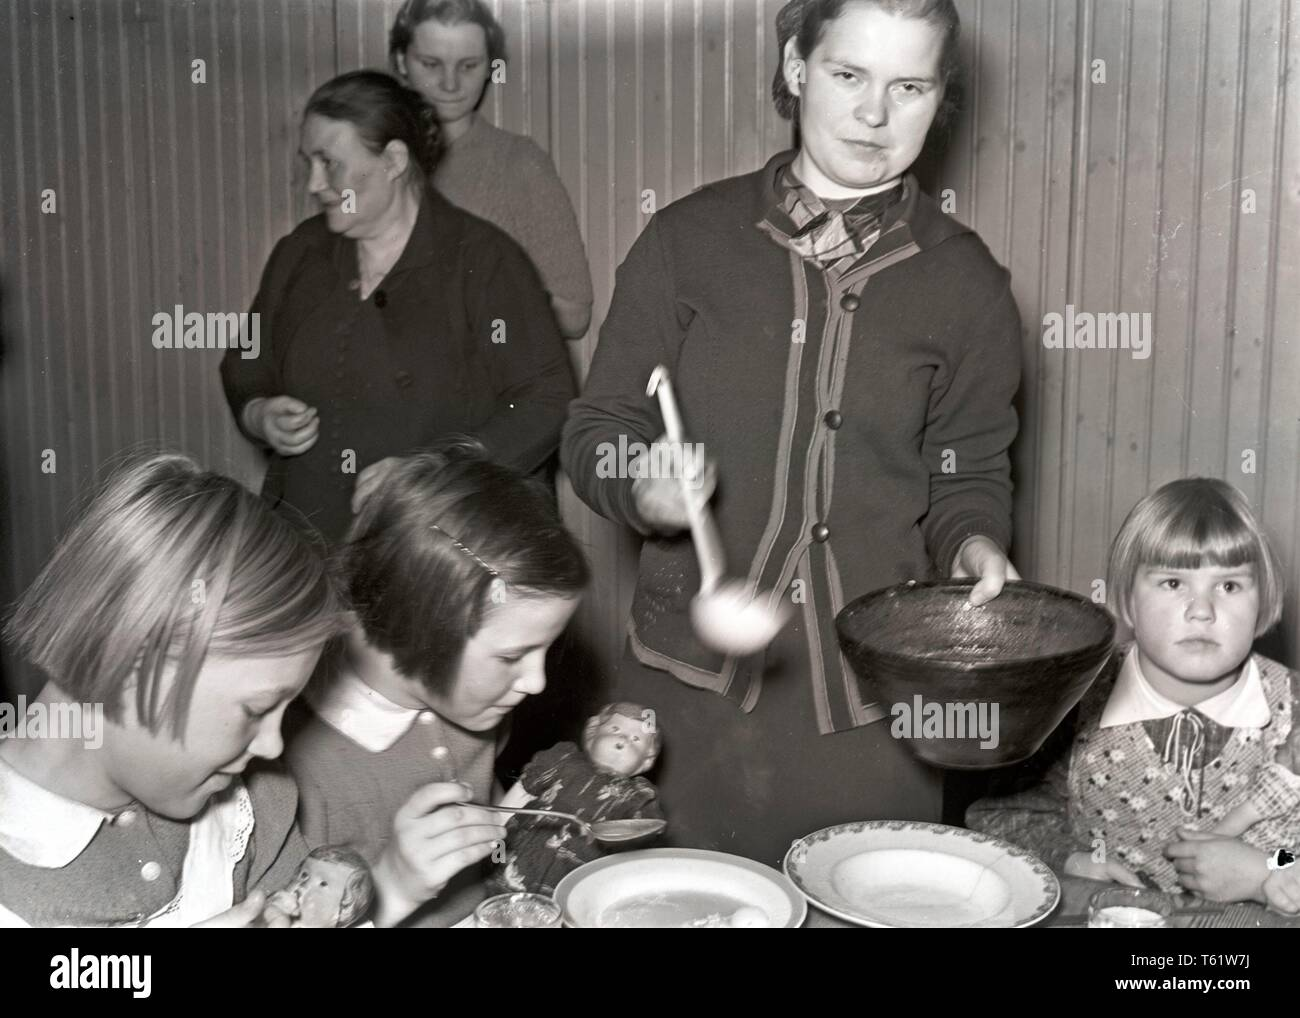 The Winter War. A military conflict between the Soviet union and Finland. It began with a Soviet invasion on november 1939 when Soviet infantery crossed the border on the Karelian Isthmus. Here a group of Finnish children being served food. Although they must experience a horrible time they play with their dolls. Photo Kristoffersson ref 98-16 January 1940 - Stock Image